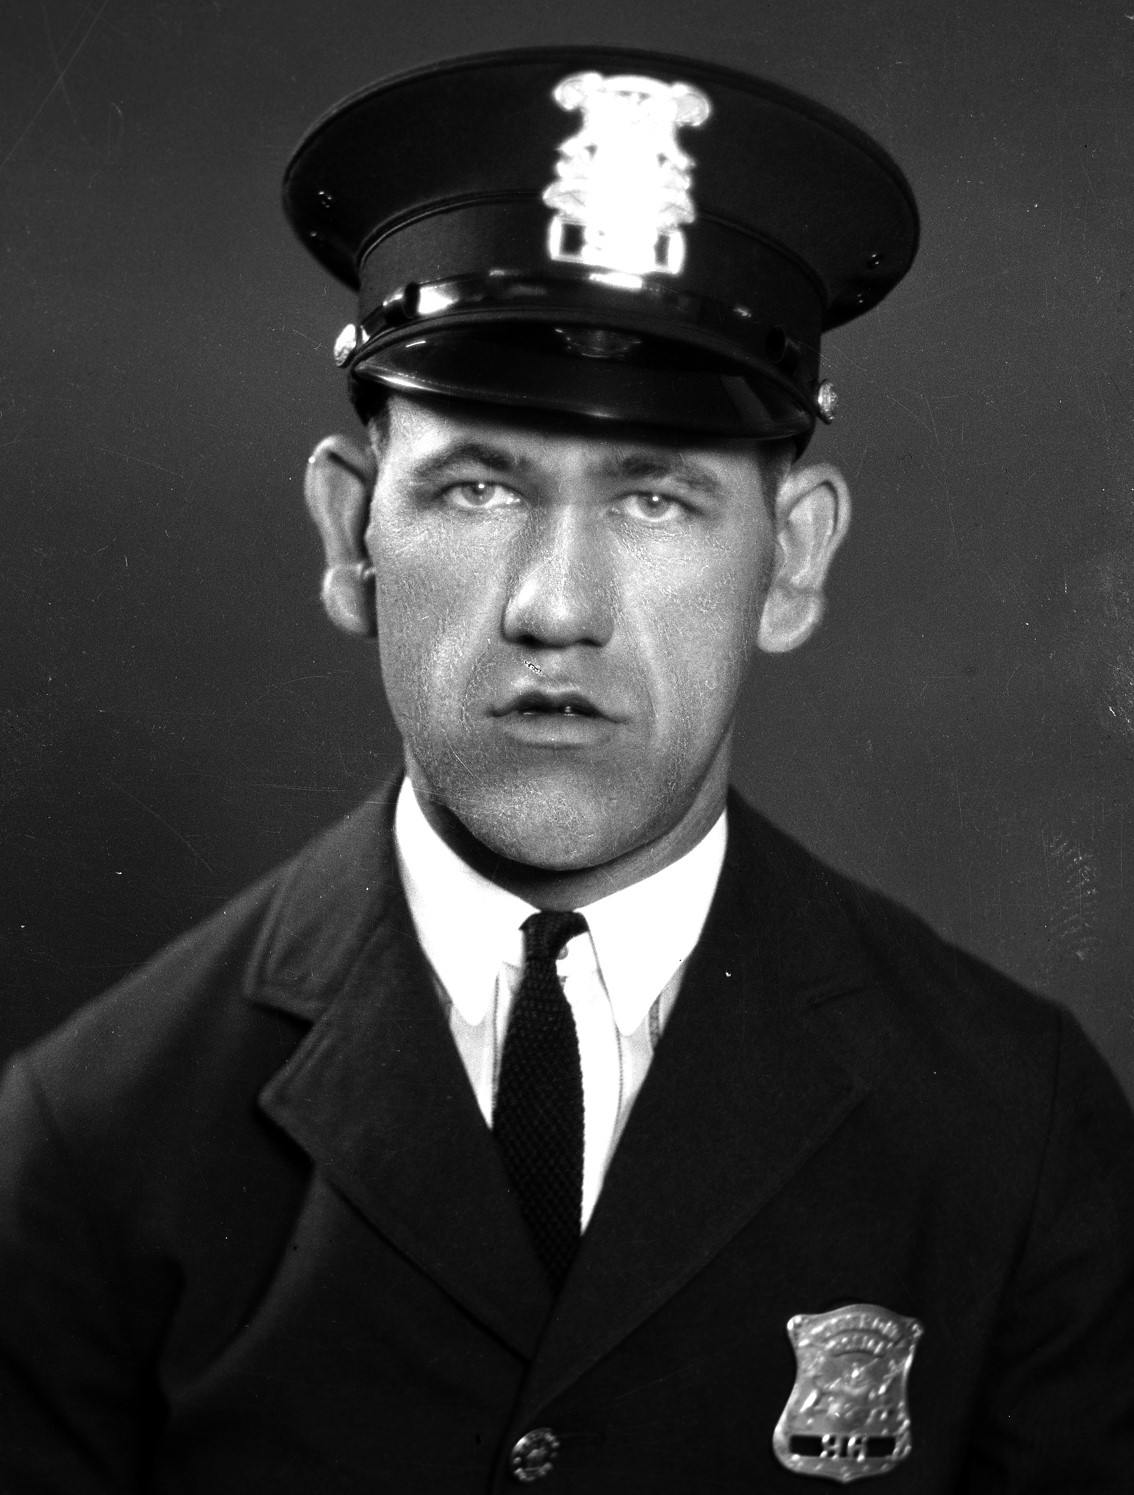 Police Officer William G. Ashworth | Detroit Police Department, Michigan